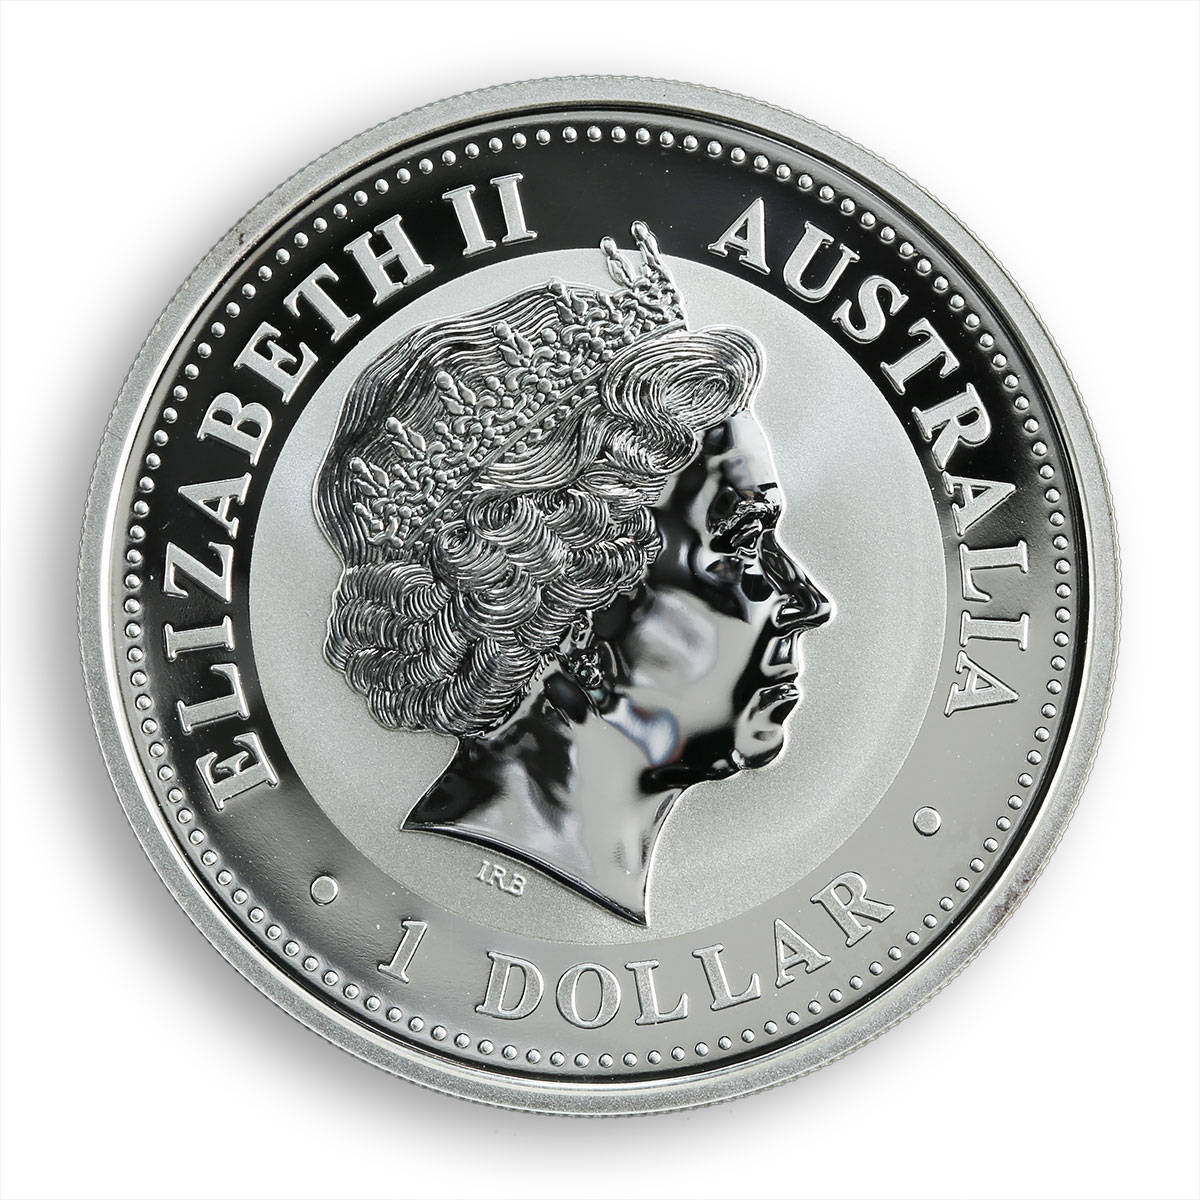 Australia 1 dollar Year of The Goat Lunar Series I 1 oz Silver Coin 2003